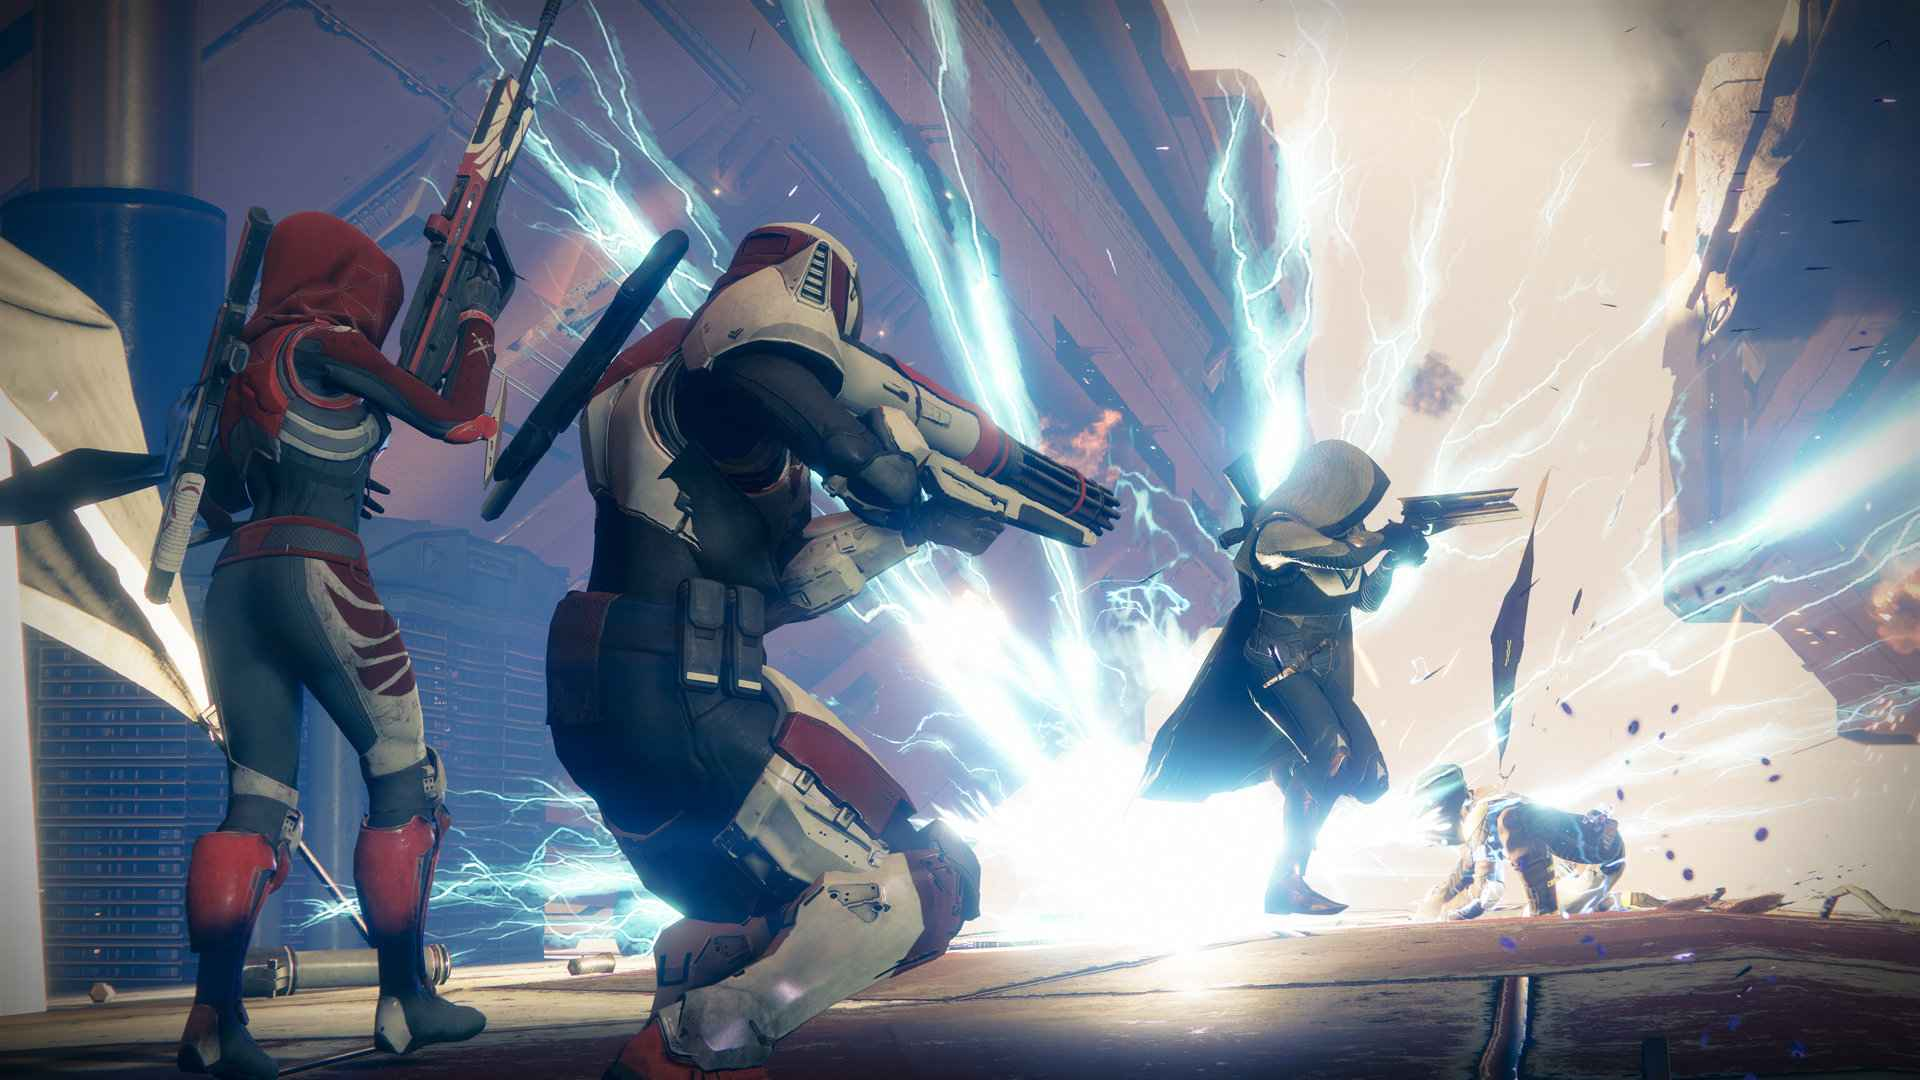 New Destiny 2 Merch Celebrates the Launch of its Next Expansion